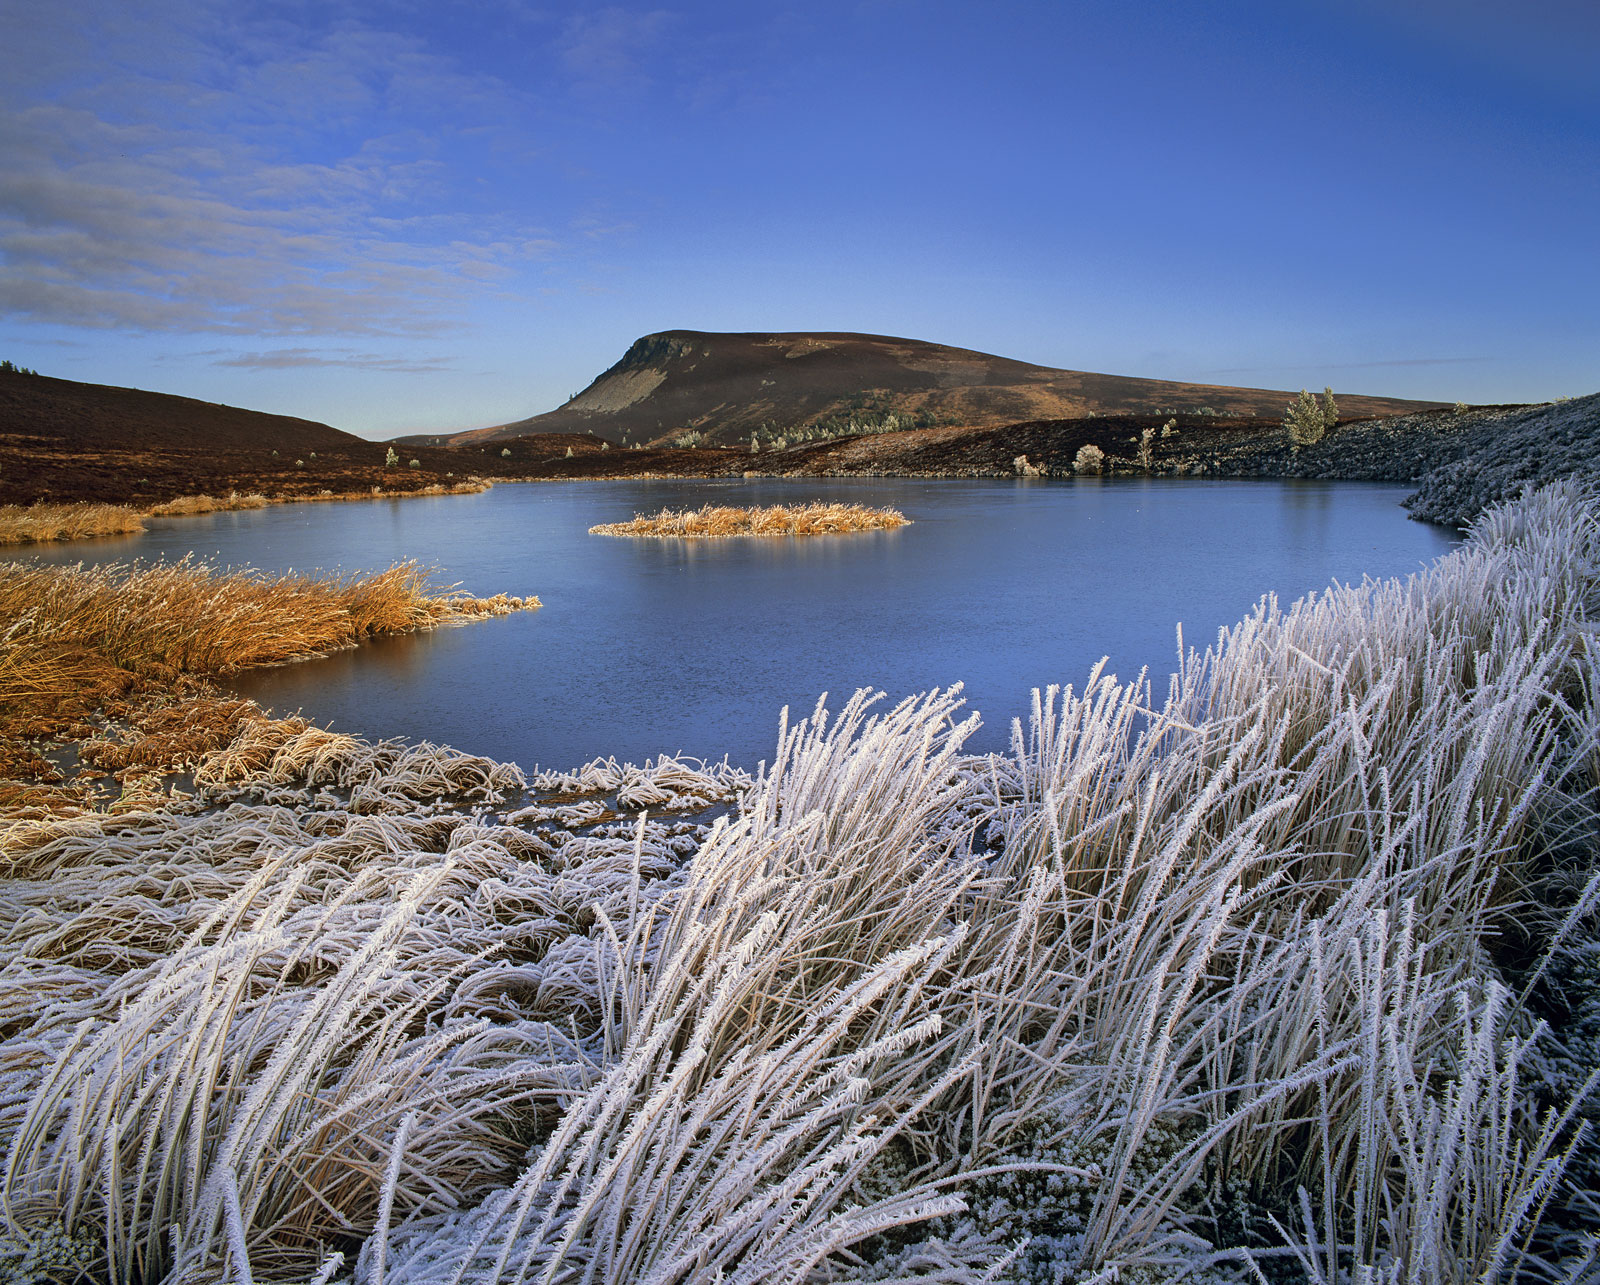 At minus tewnty the loch at the edge of the Dava moor road freezes solid leaving a little golden island of grass trapped in blue...